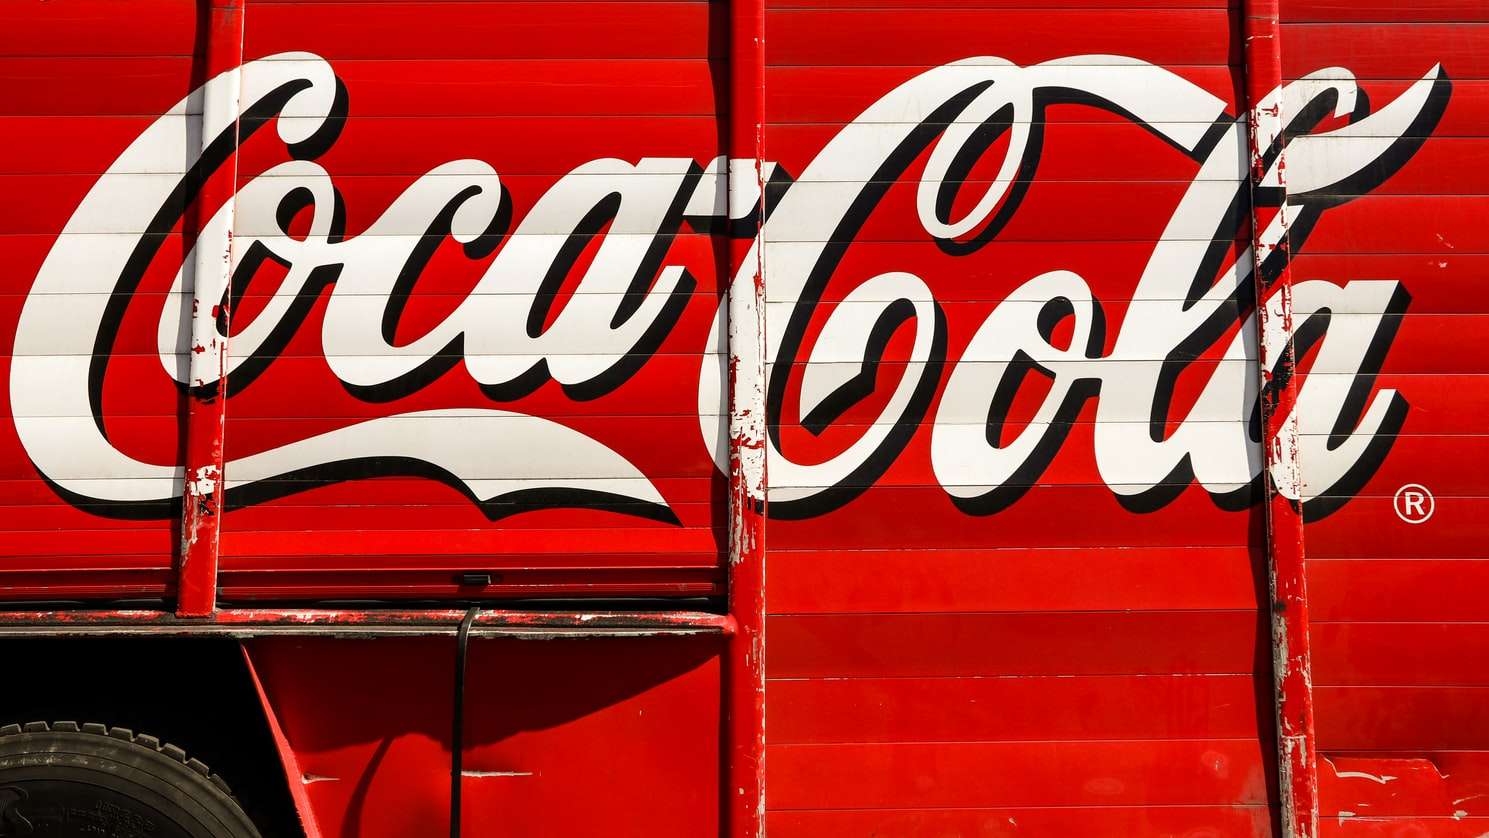 Coca-Cola: Strategiewechsel funktioniert